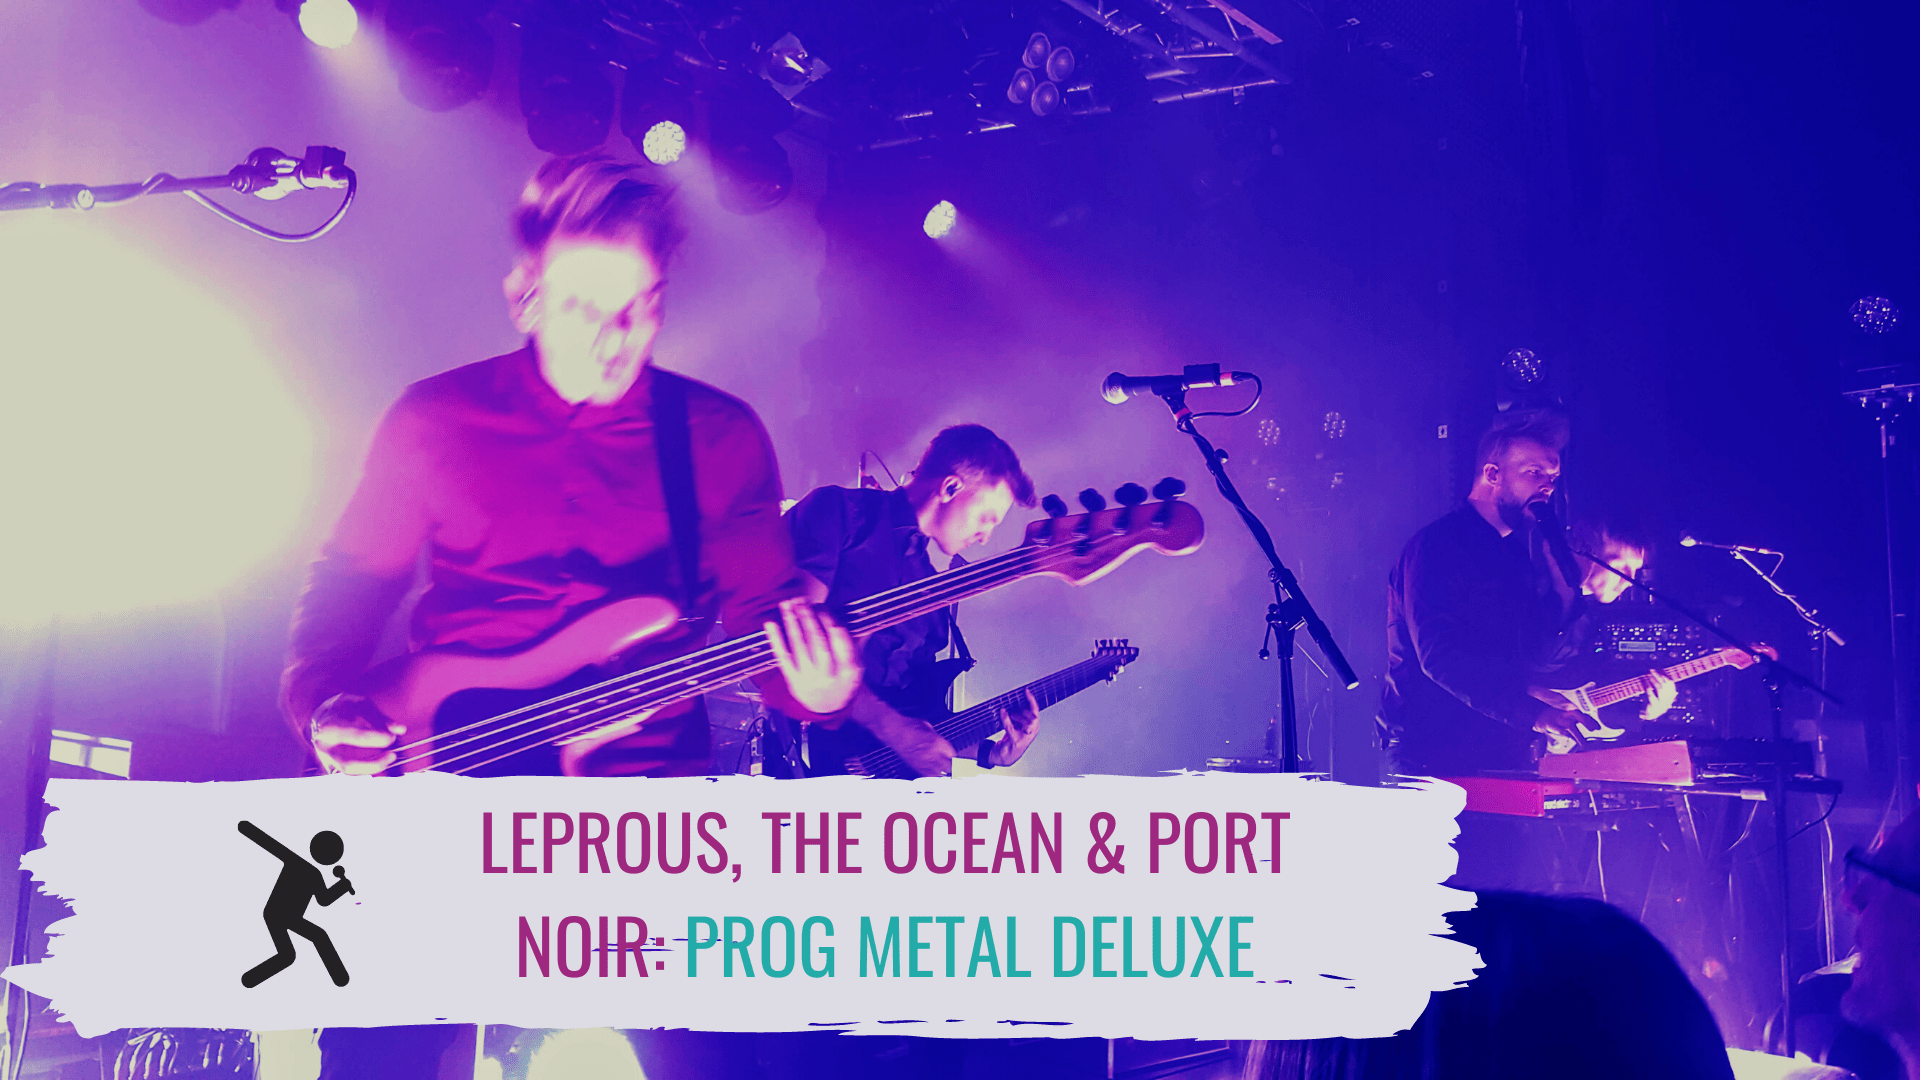 Leprous, The Ocean & Port Noir:  Prog Metal Deluxe